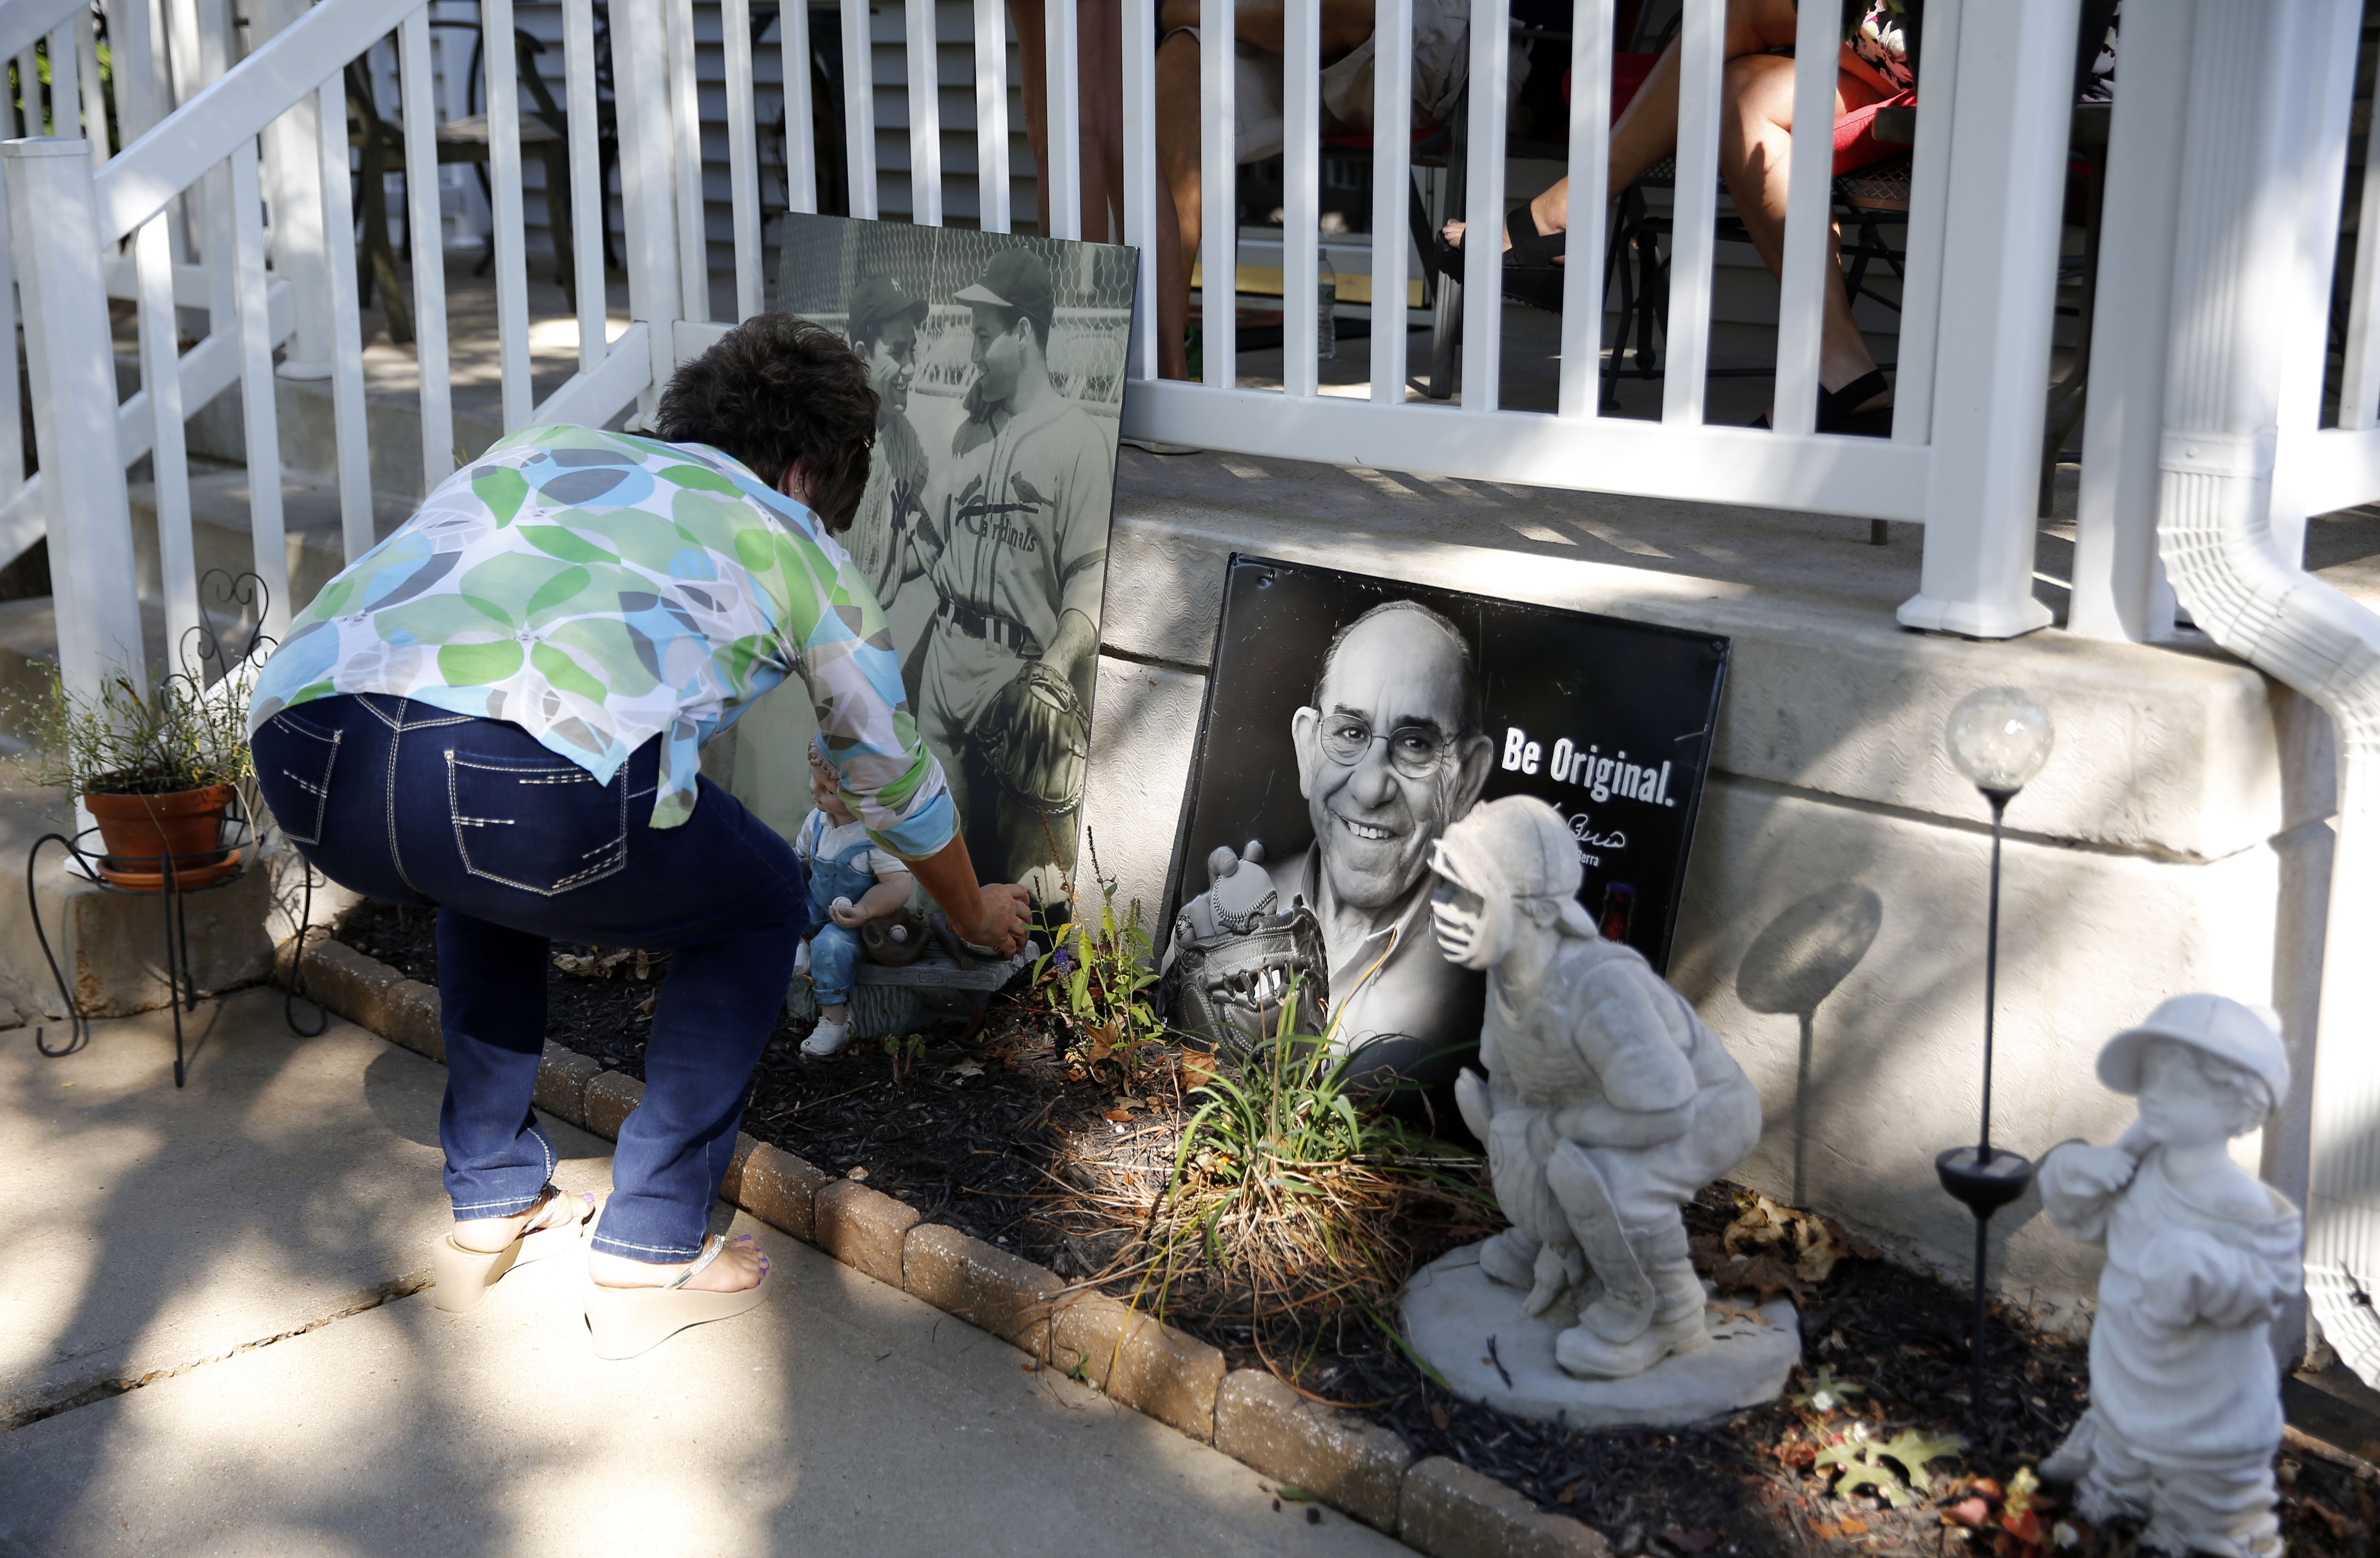 Barbara Berra places a baseball at a memorial outside the boyhood home of her uncle, baseball Hall of Fame catcher Yogi Berra, Wednesday, Sept. 23, 2015, in St. Louis. Berra, who helped the New York Yankees to 10 World Series championships has died Tuesda